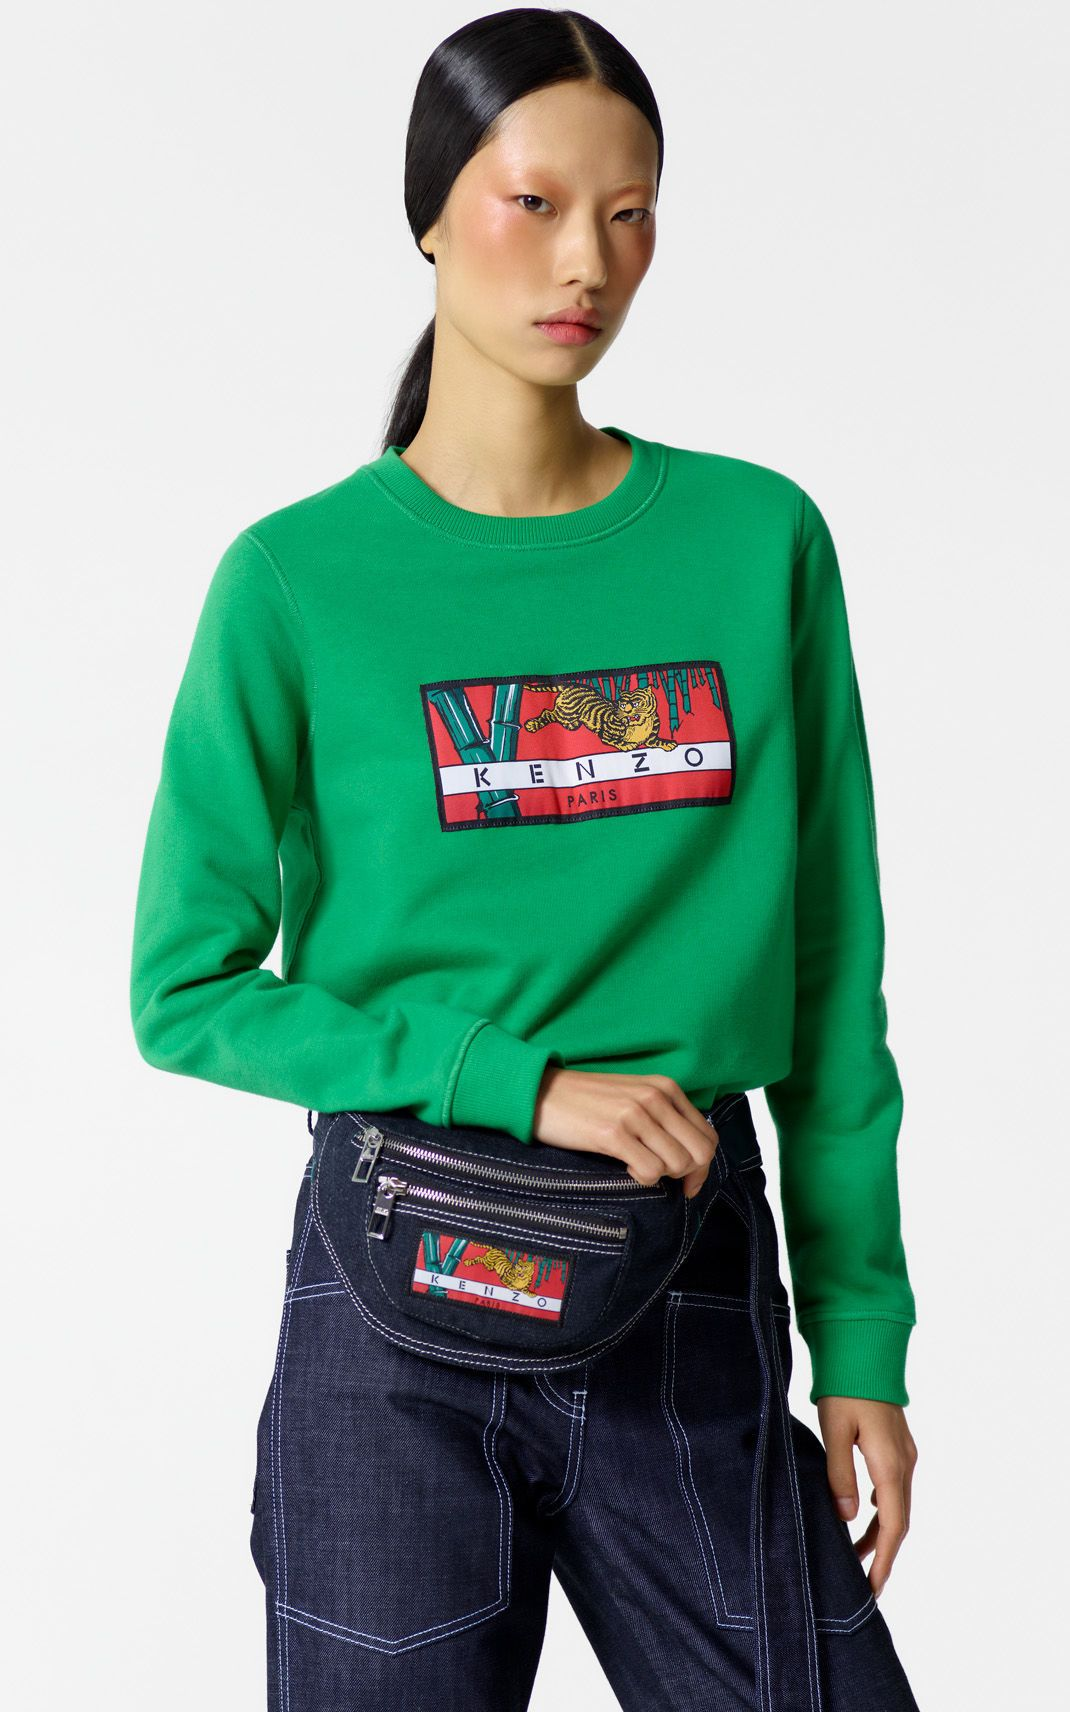 33ccf2ef 'Bamboo Tiger' sweatshirt Kenzo for - Shop at Kenzo.com official online  store